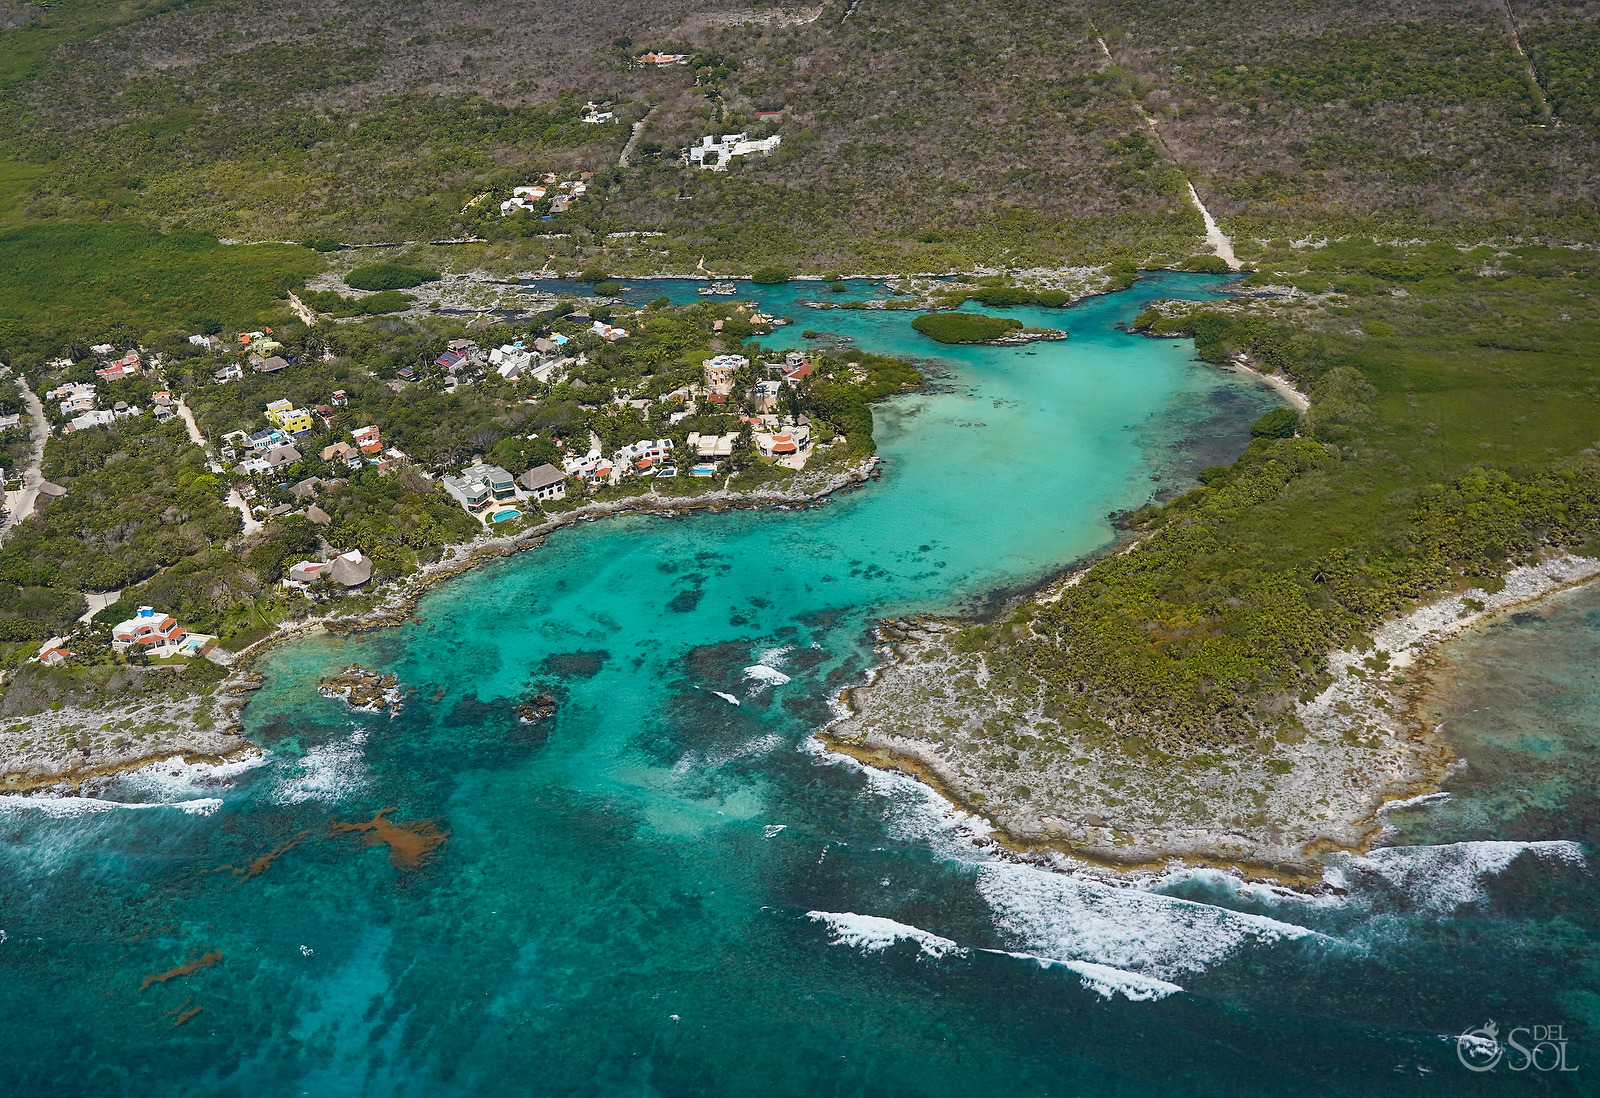 Aerial Photograph Yal Ku Lagoon in Akumal without tourists during April 2020 quarantine